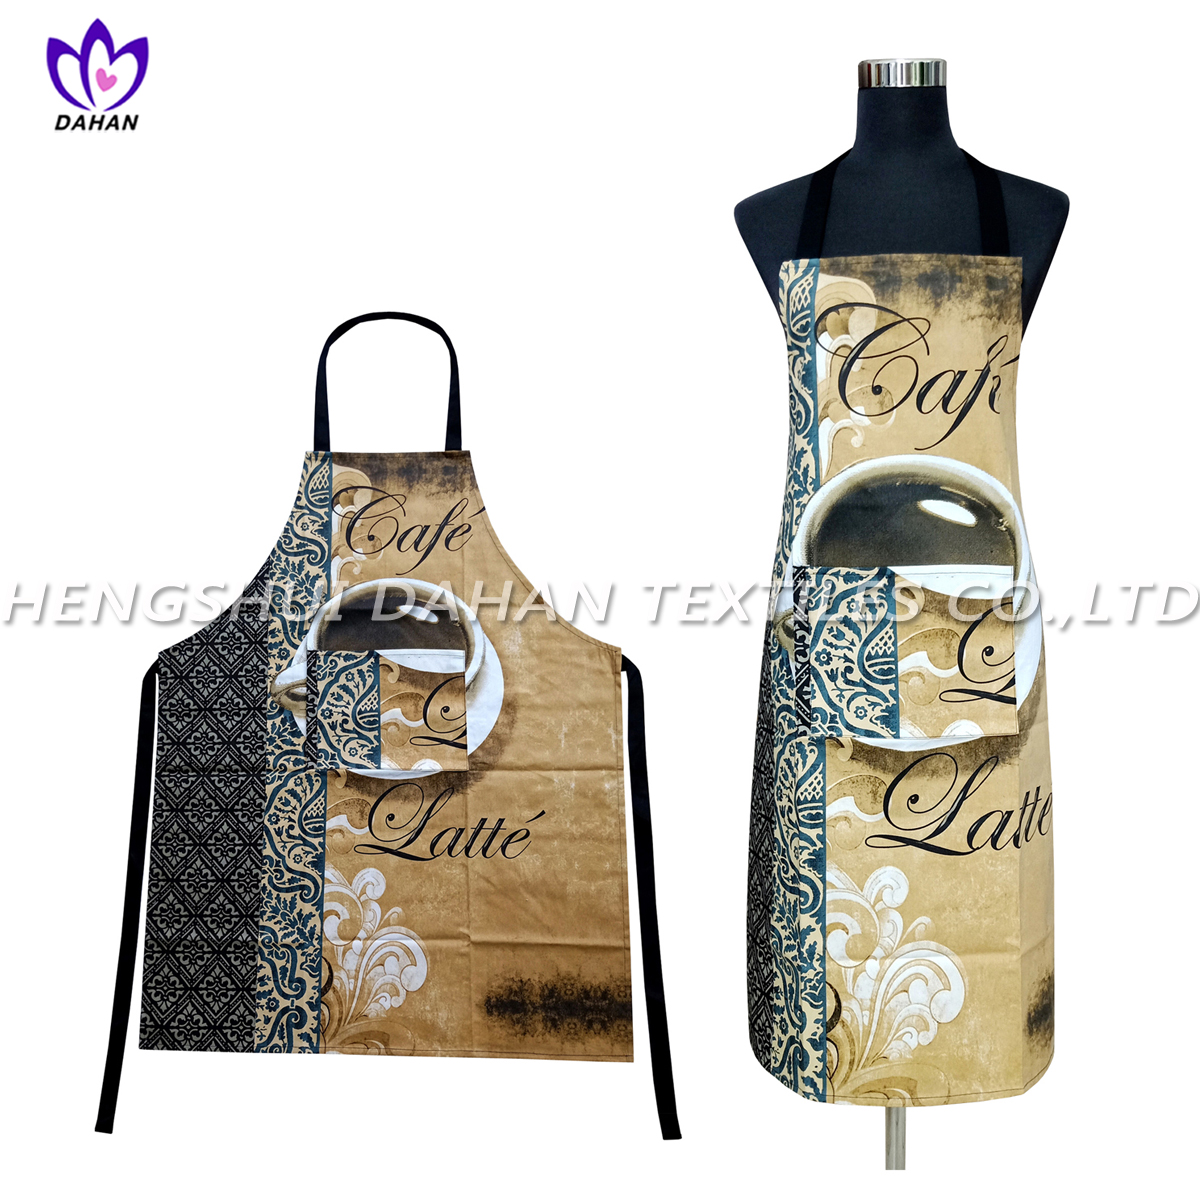 AGP75 100%cotton twill printing waterproof apron.